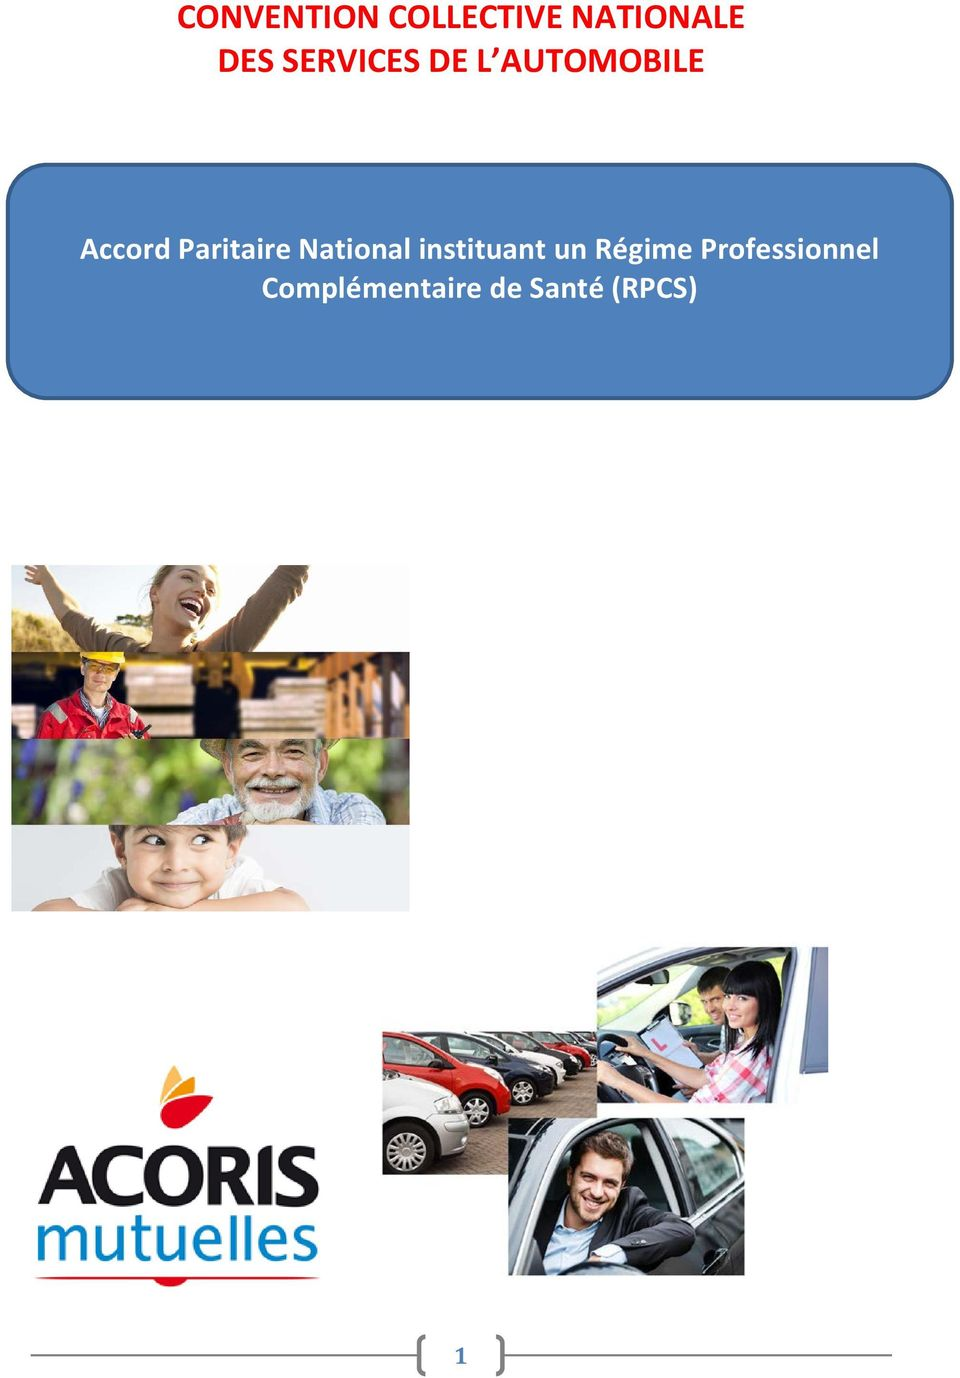 Paritaire National instituant un